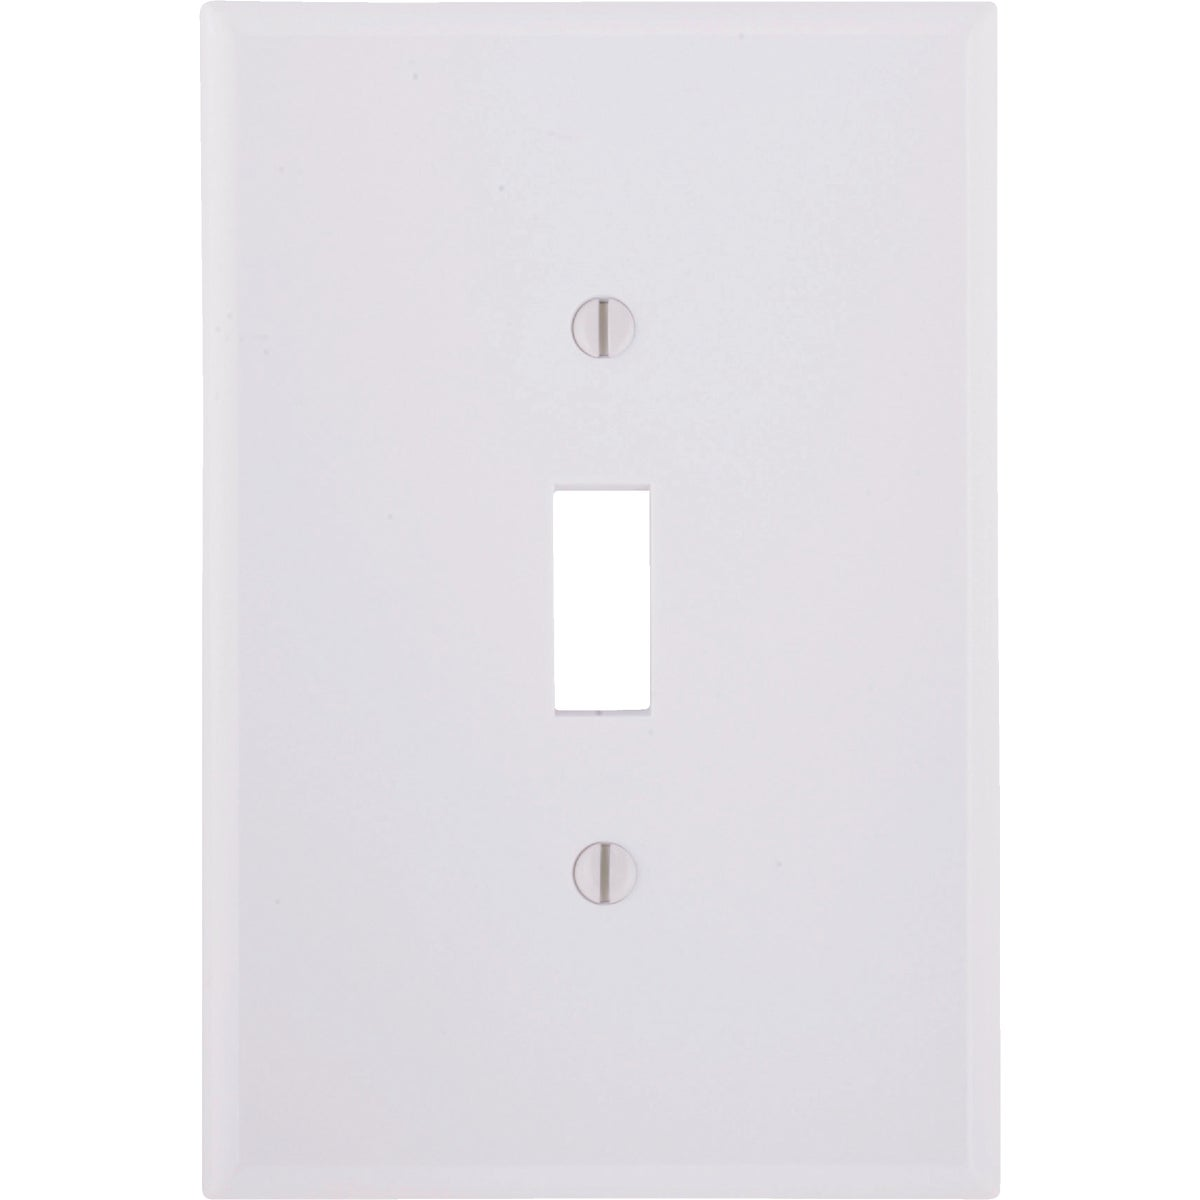 WHT 1-TOGGLE WALL PLATE - 88101 by Leviton Mfg Co